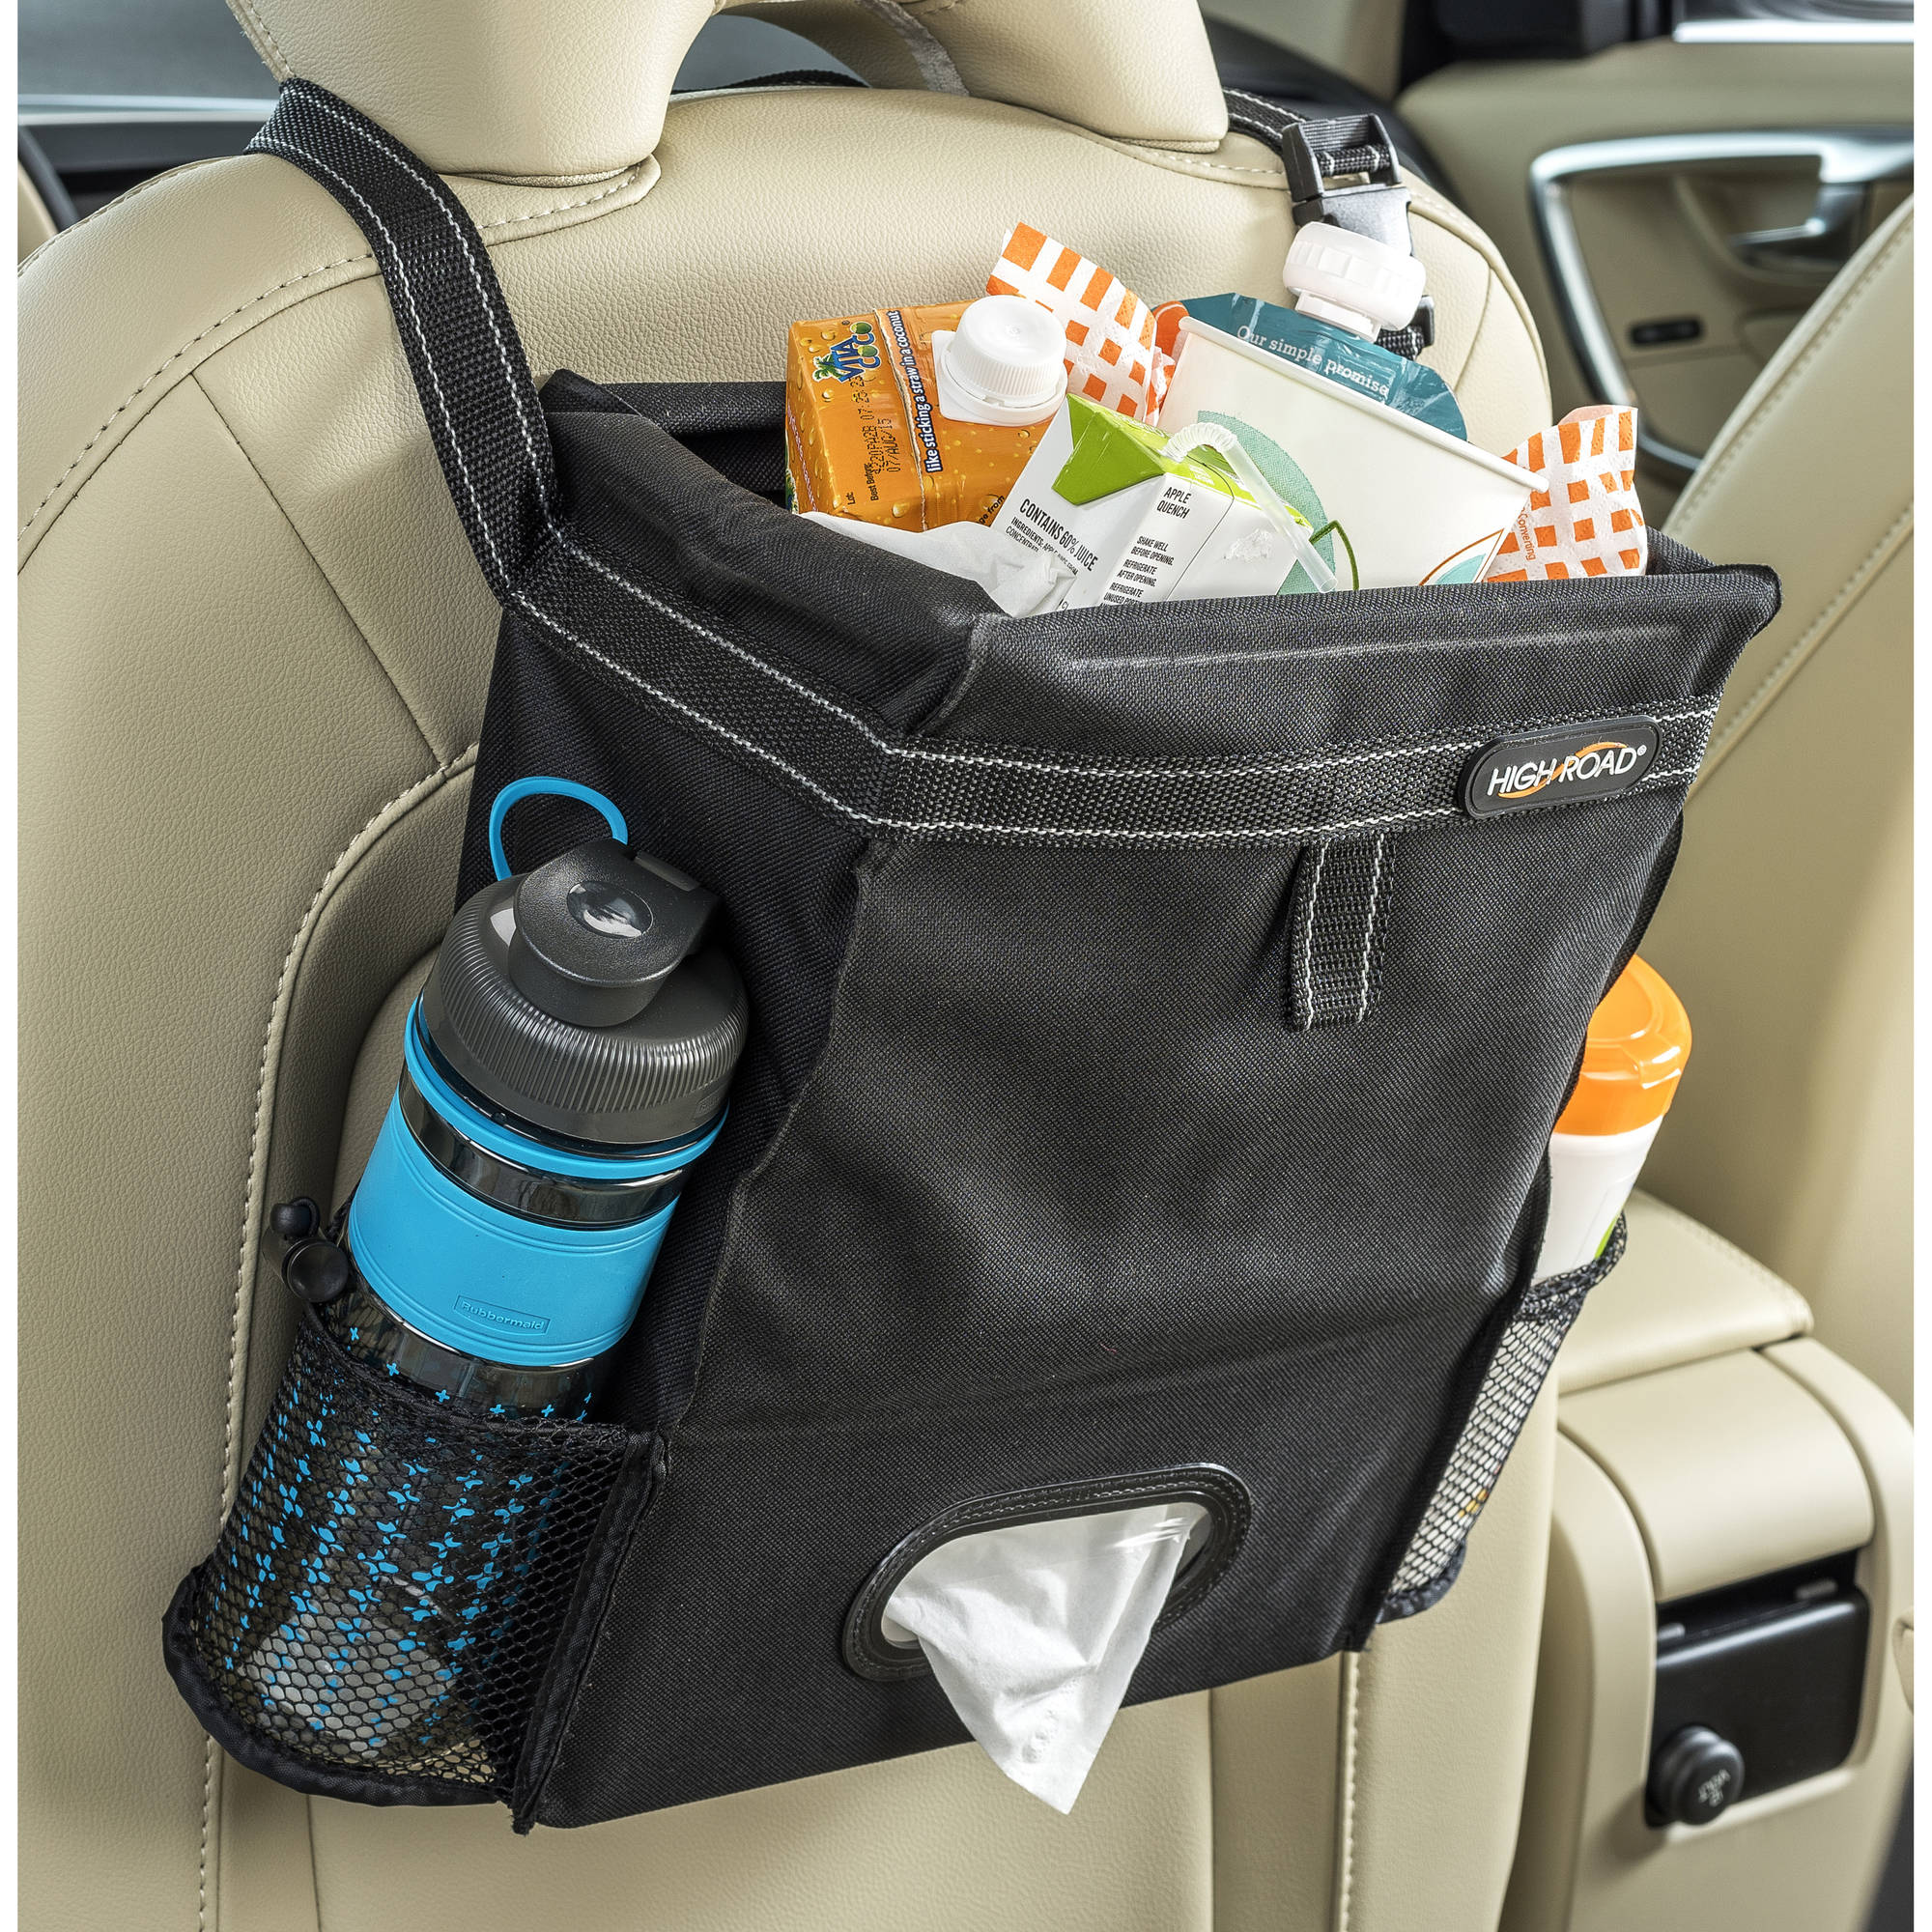 High Road Puff 'n Stuff Trash and Tissue Car Seat Organizer